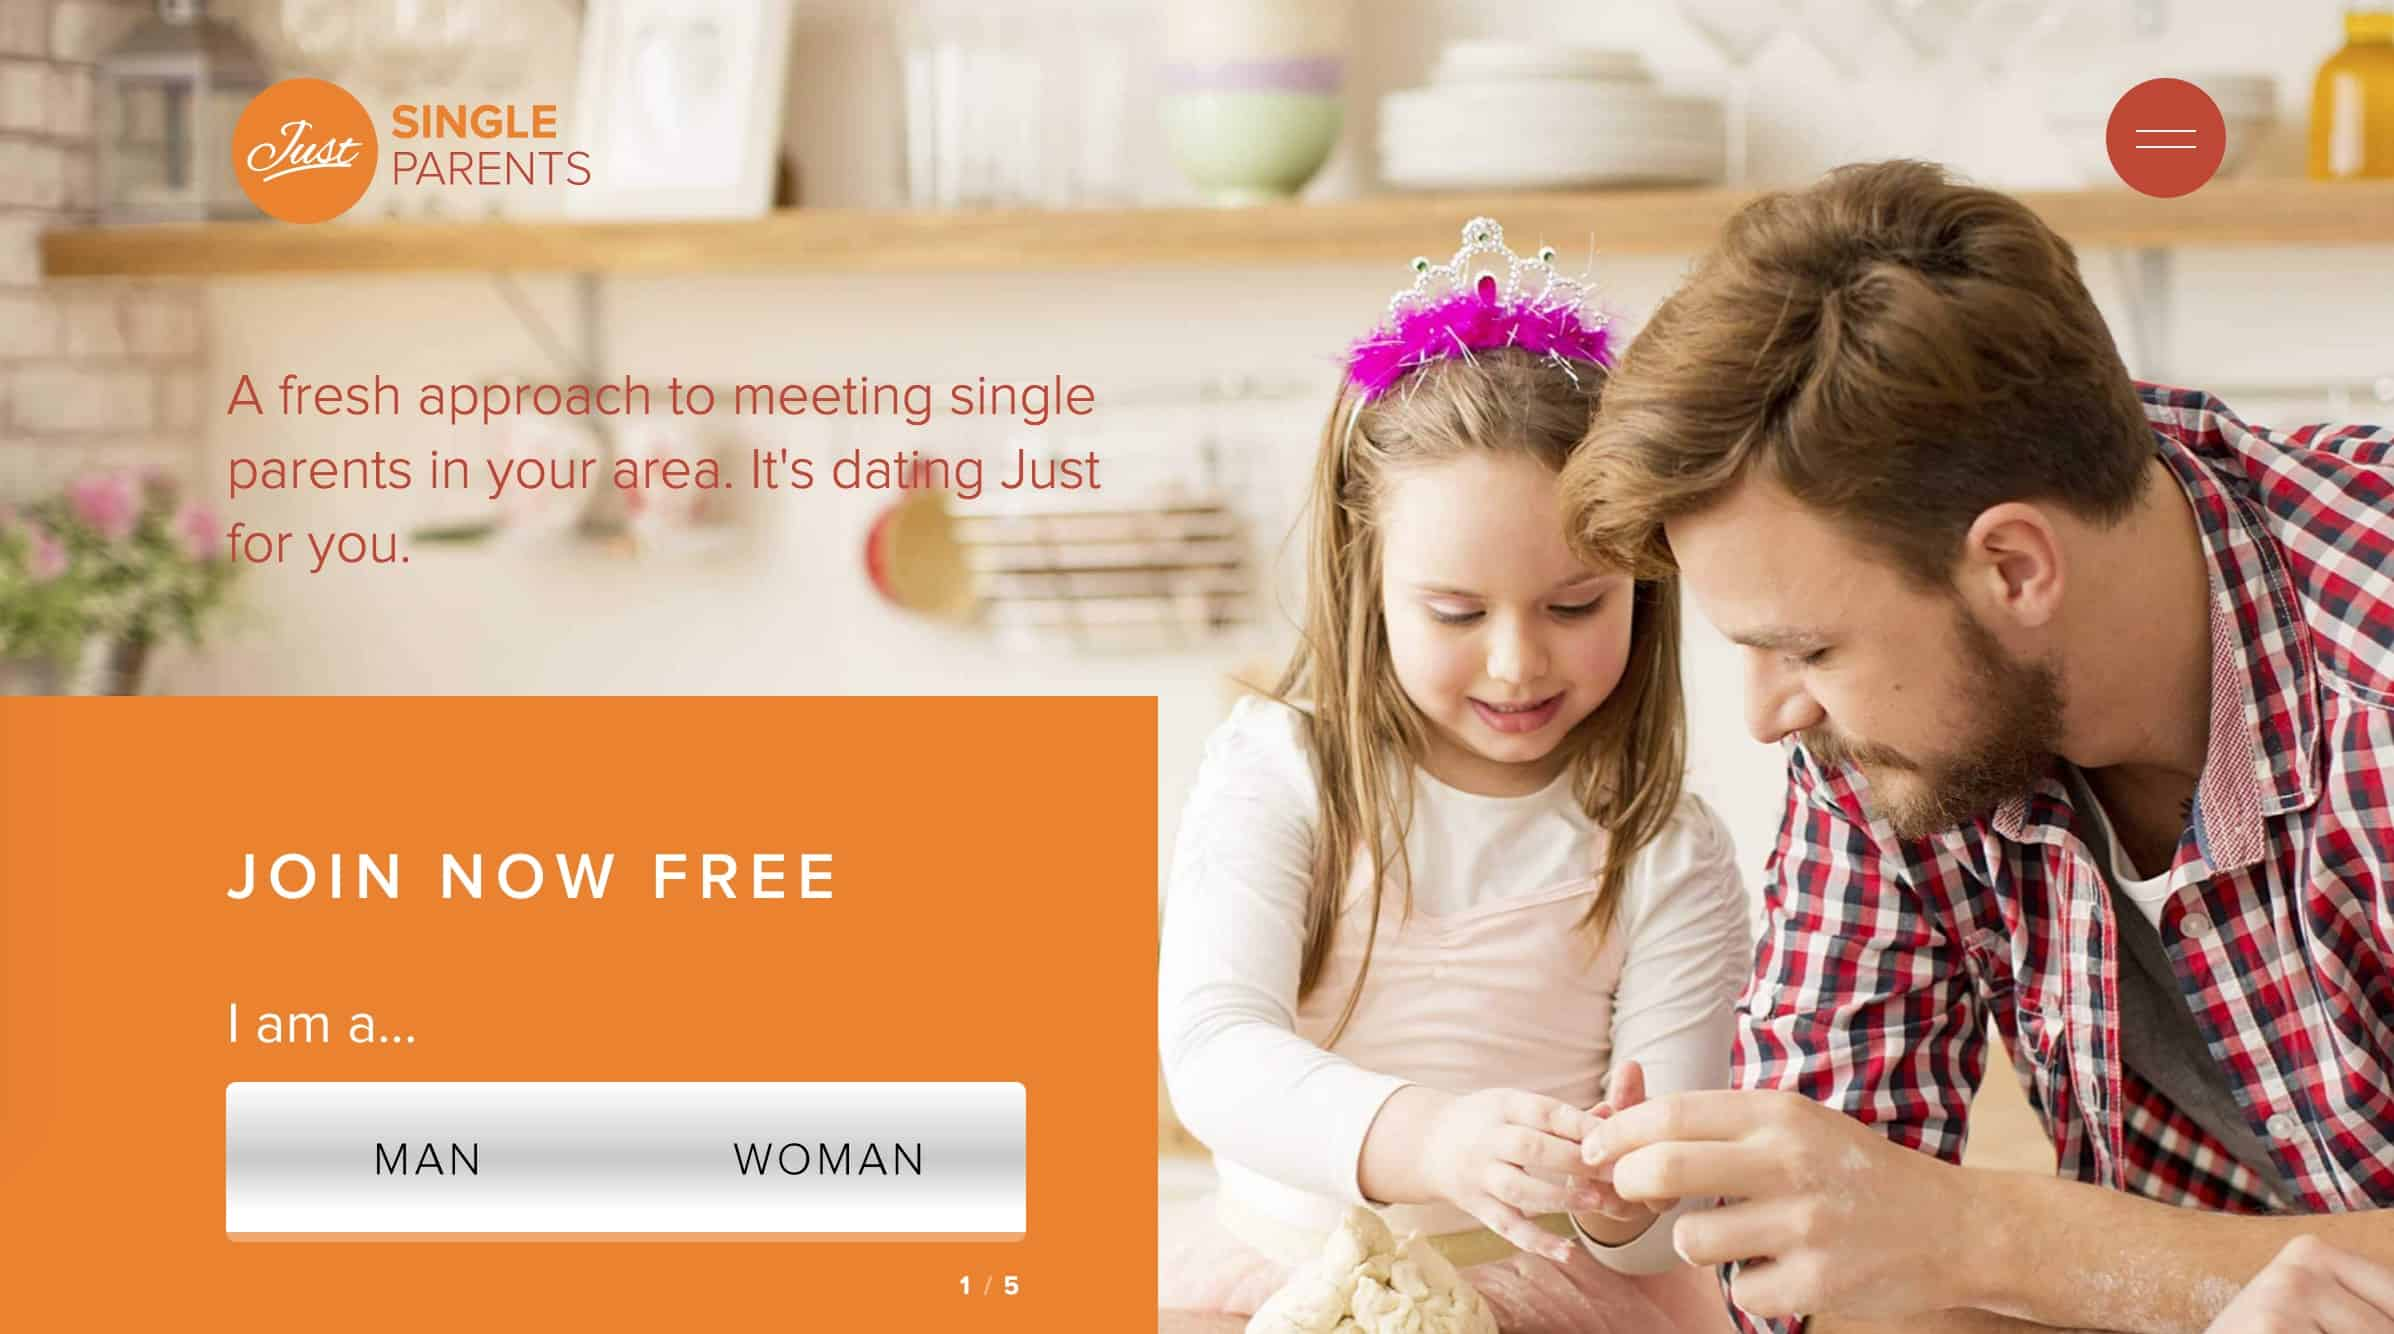 east andover single parent dating site East lake's best 100% free dating site for single parents join our online community of florida single parents and meet people like you through our free east lake single parent personal ads and online chat rooms.